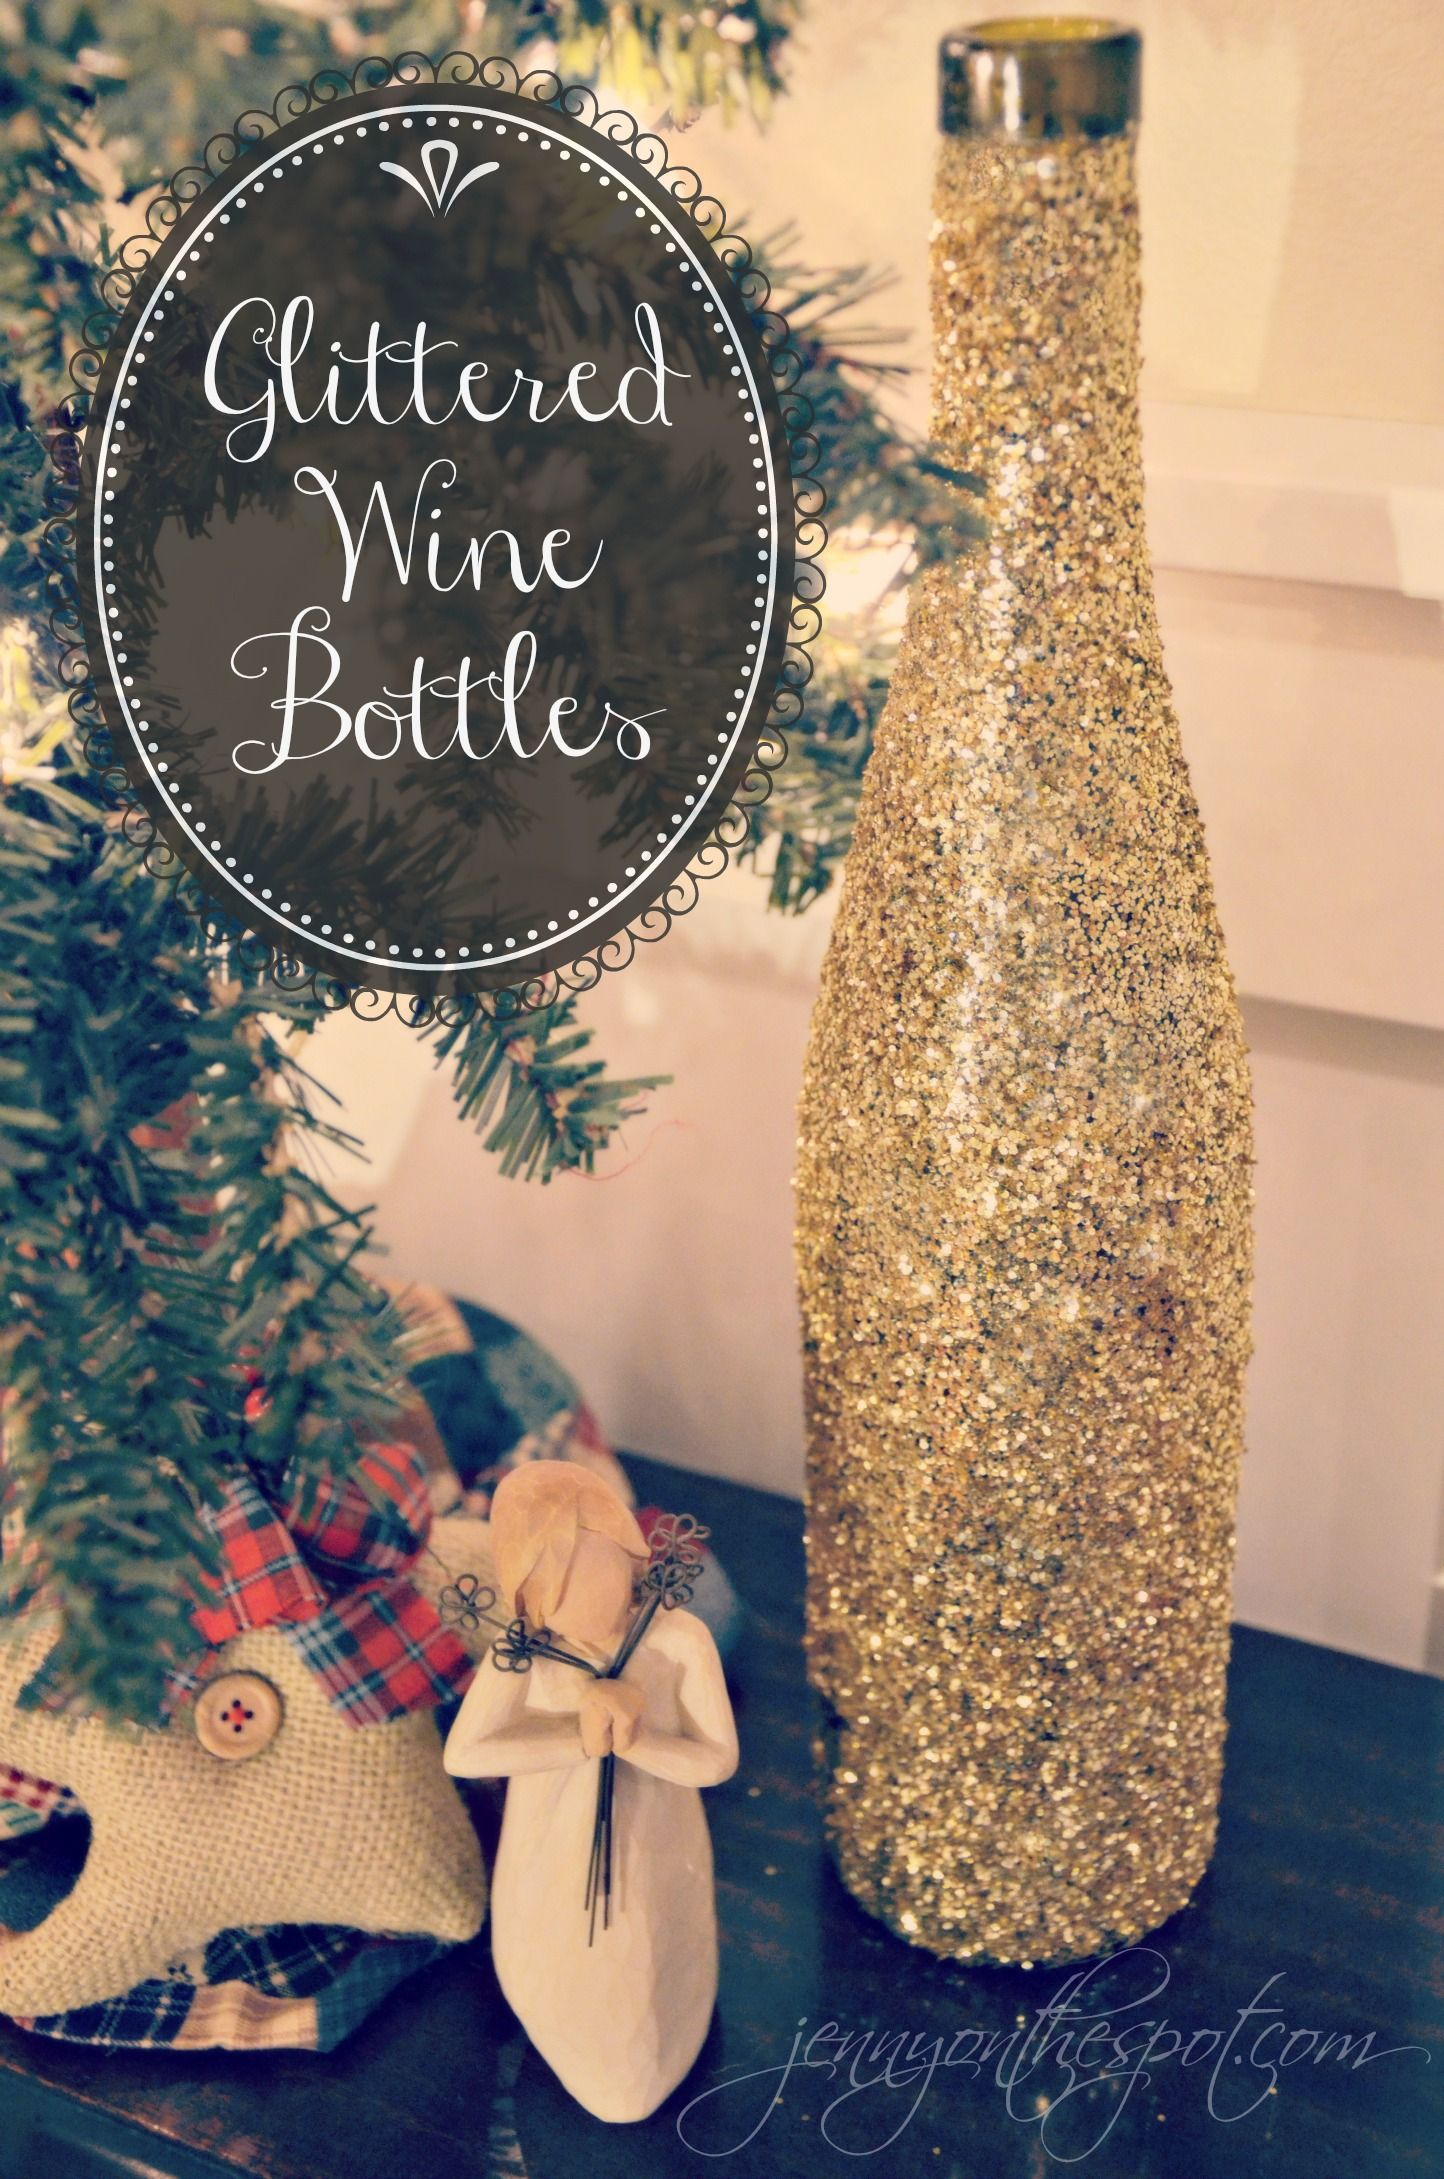 Decorating Wine Bottles With Glitter Tutorial For Diy Glittered Wine Bottles  Bottle Wine And Purple